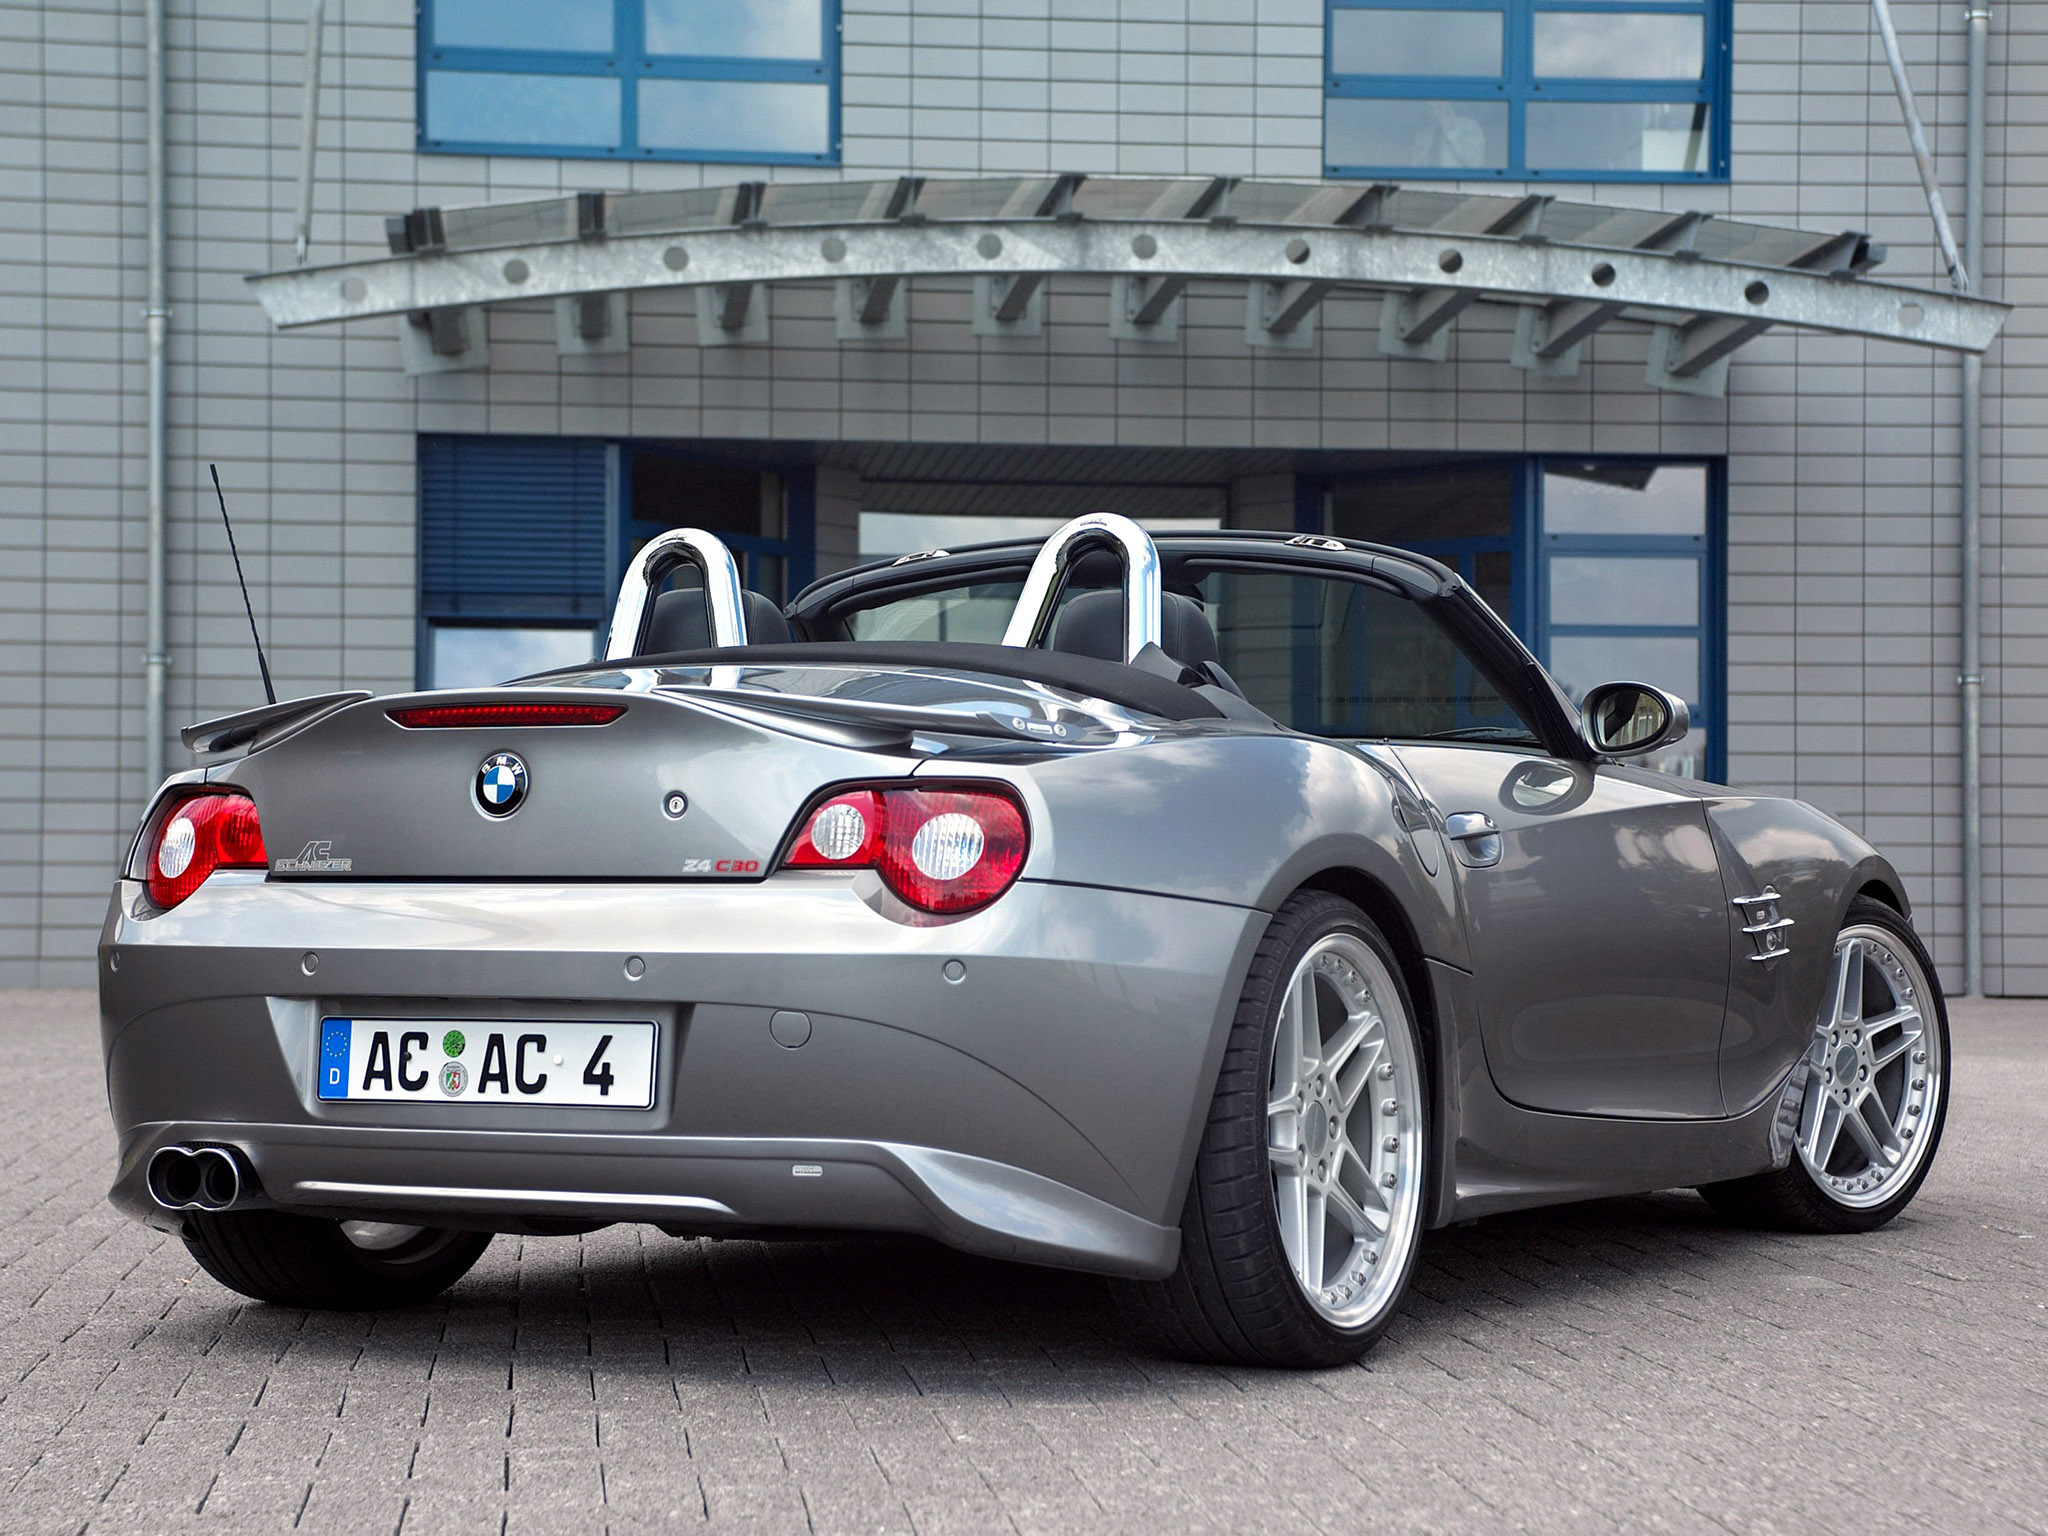 Bmw Z4 2005 Review Amazing Pictures And Images Look At